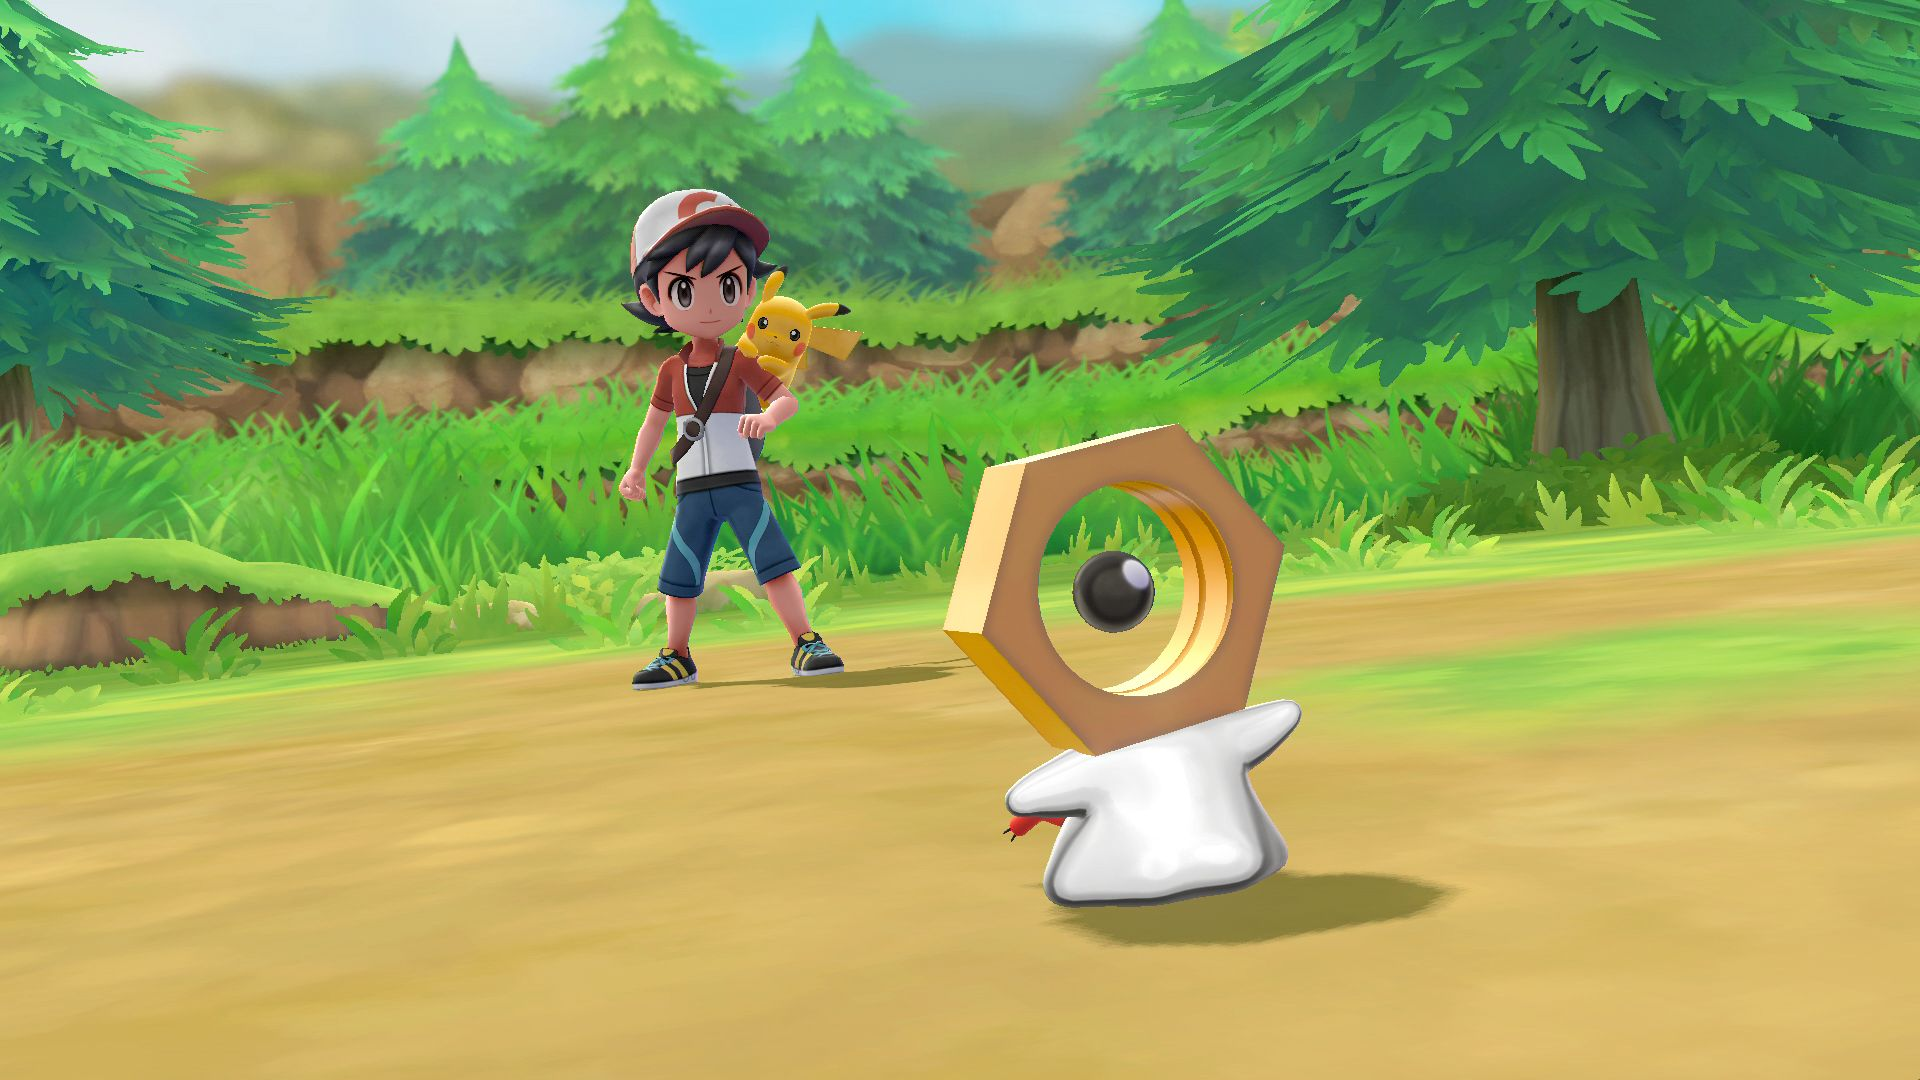 Nintendo used 'Pokémon Go' to reveal a new mythical critter